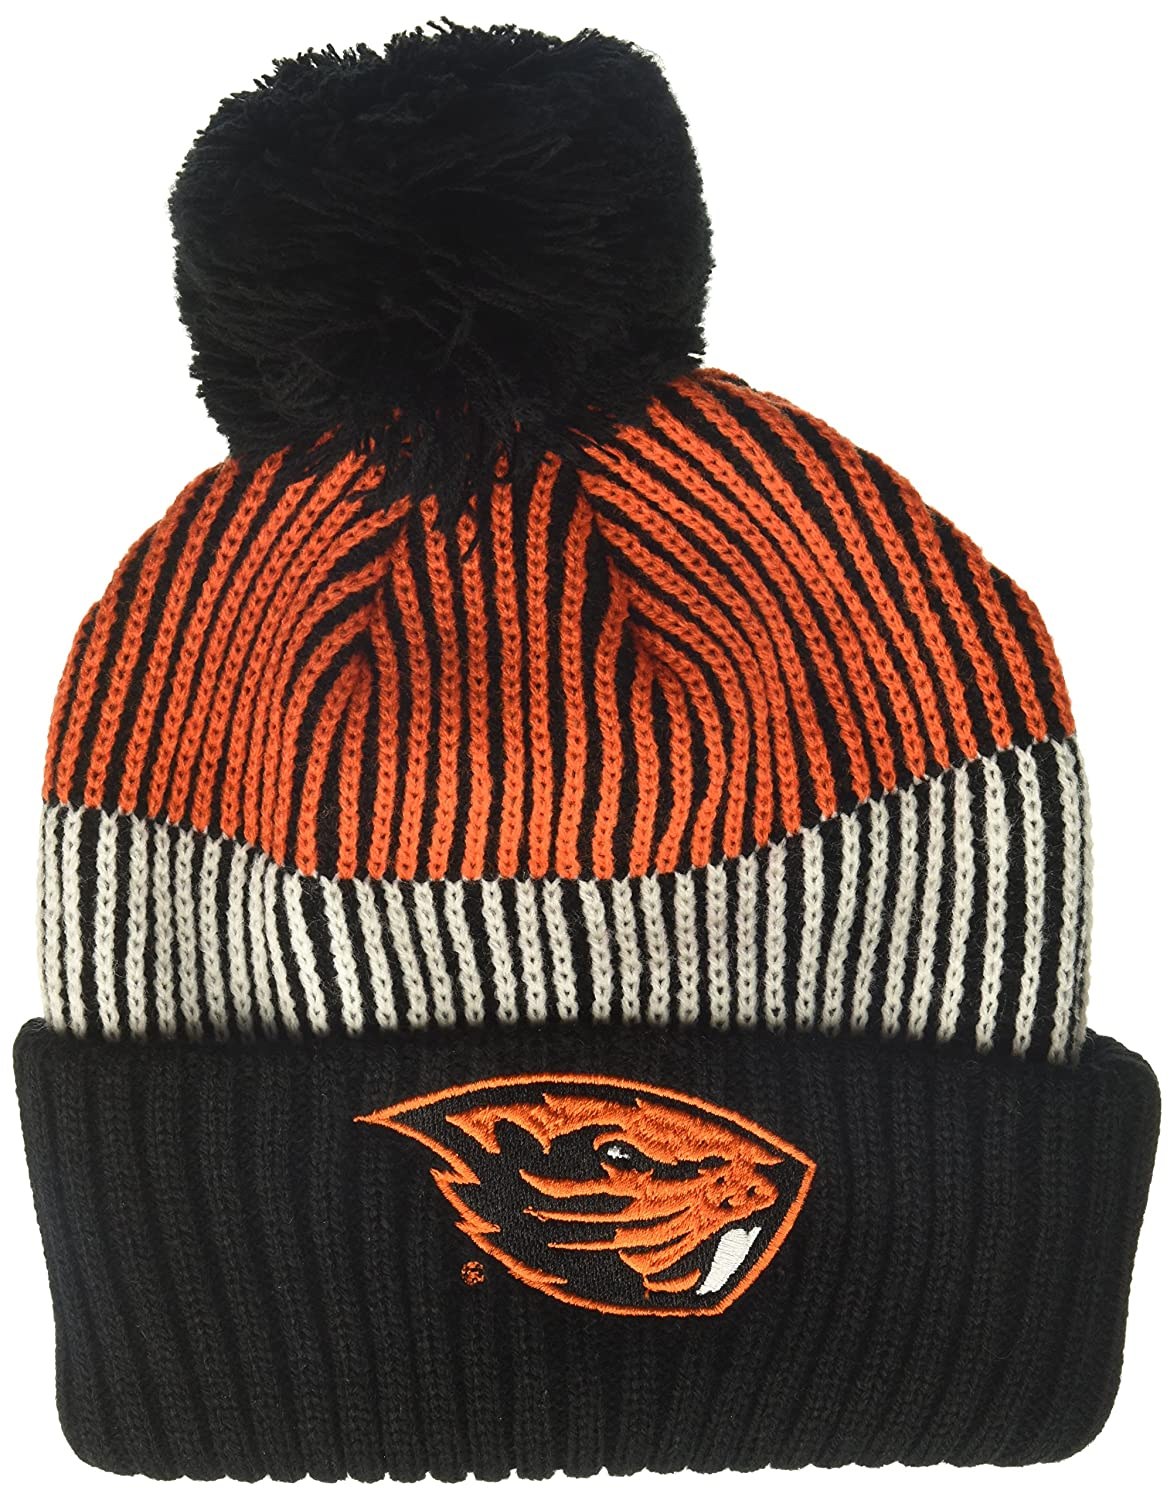 Youth One Size NCAA Oregon State Beavers Youth Outerstuff Team Stripe Cuffed Knit Hat Team Color